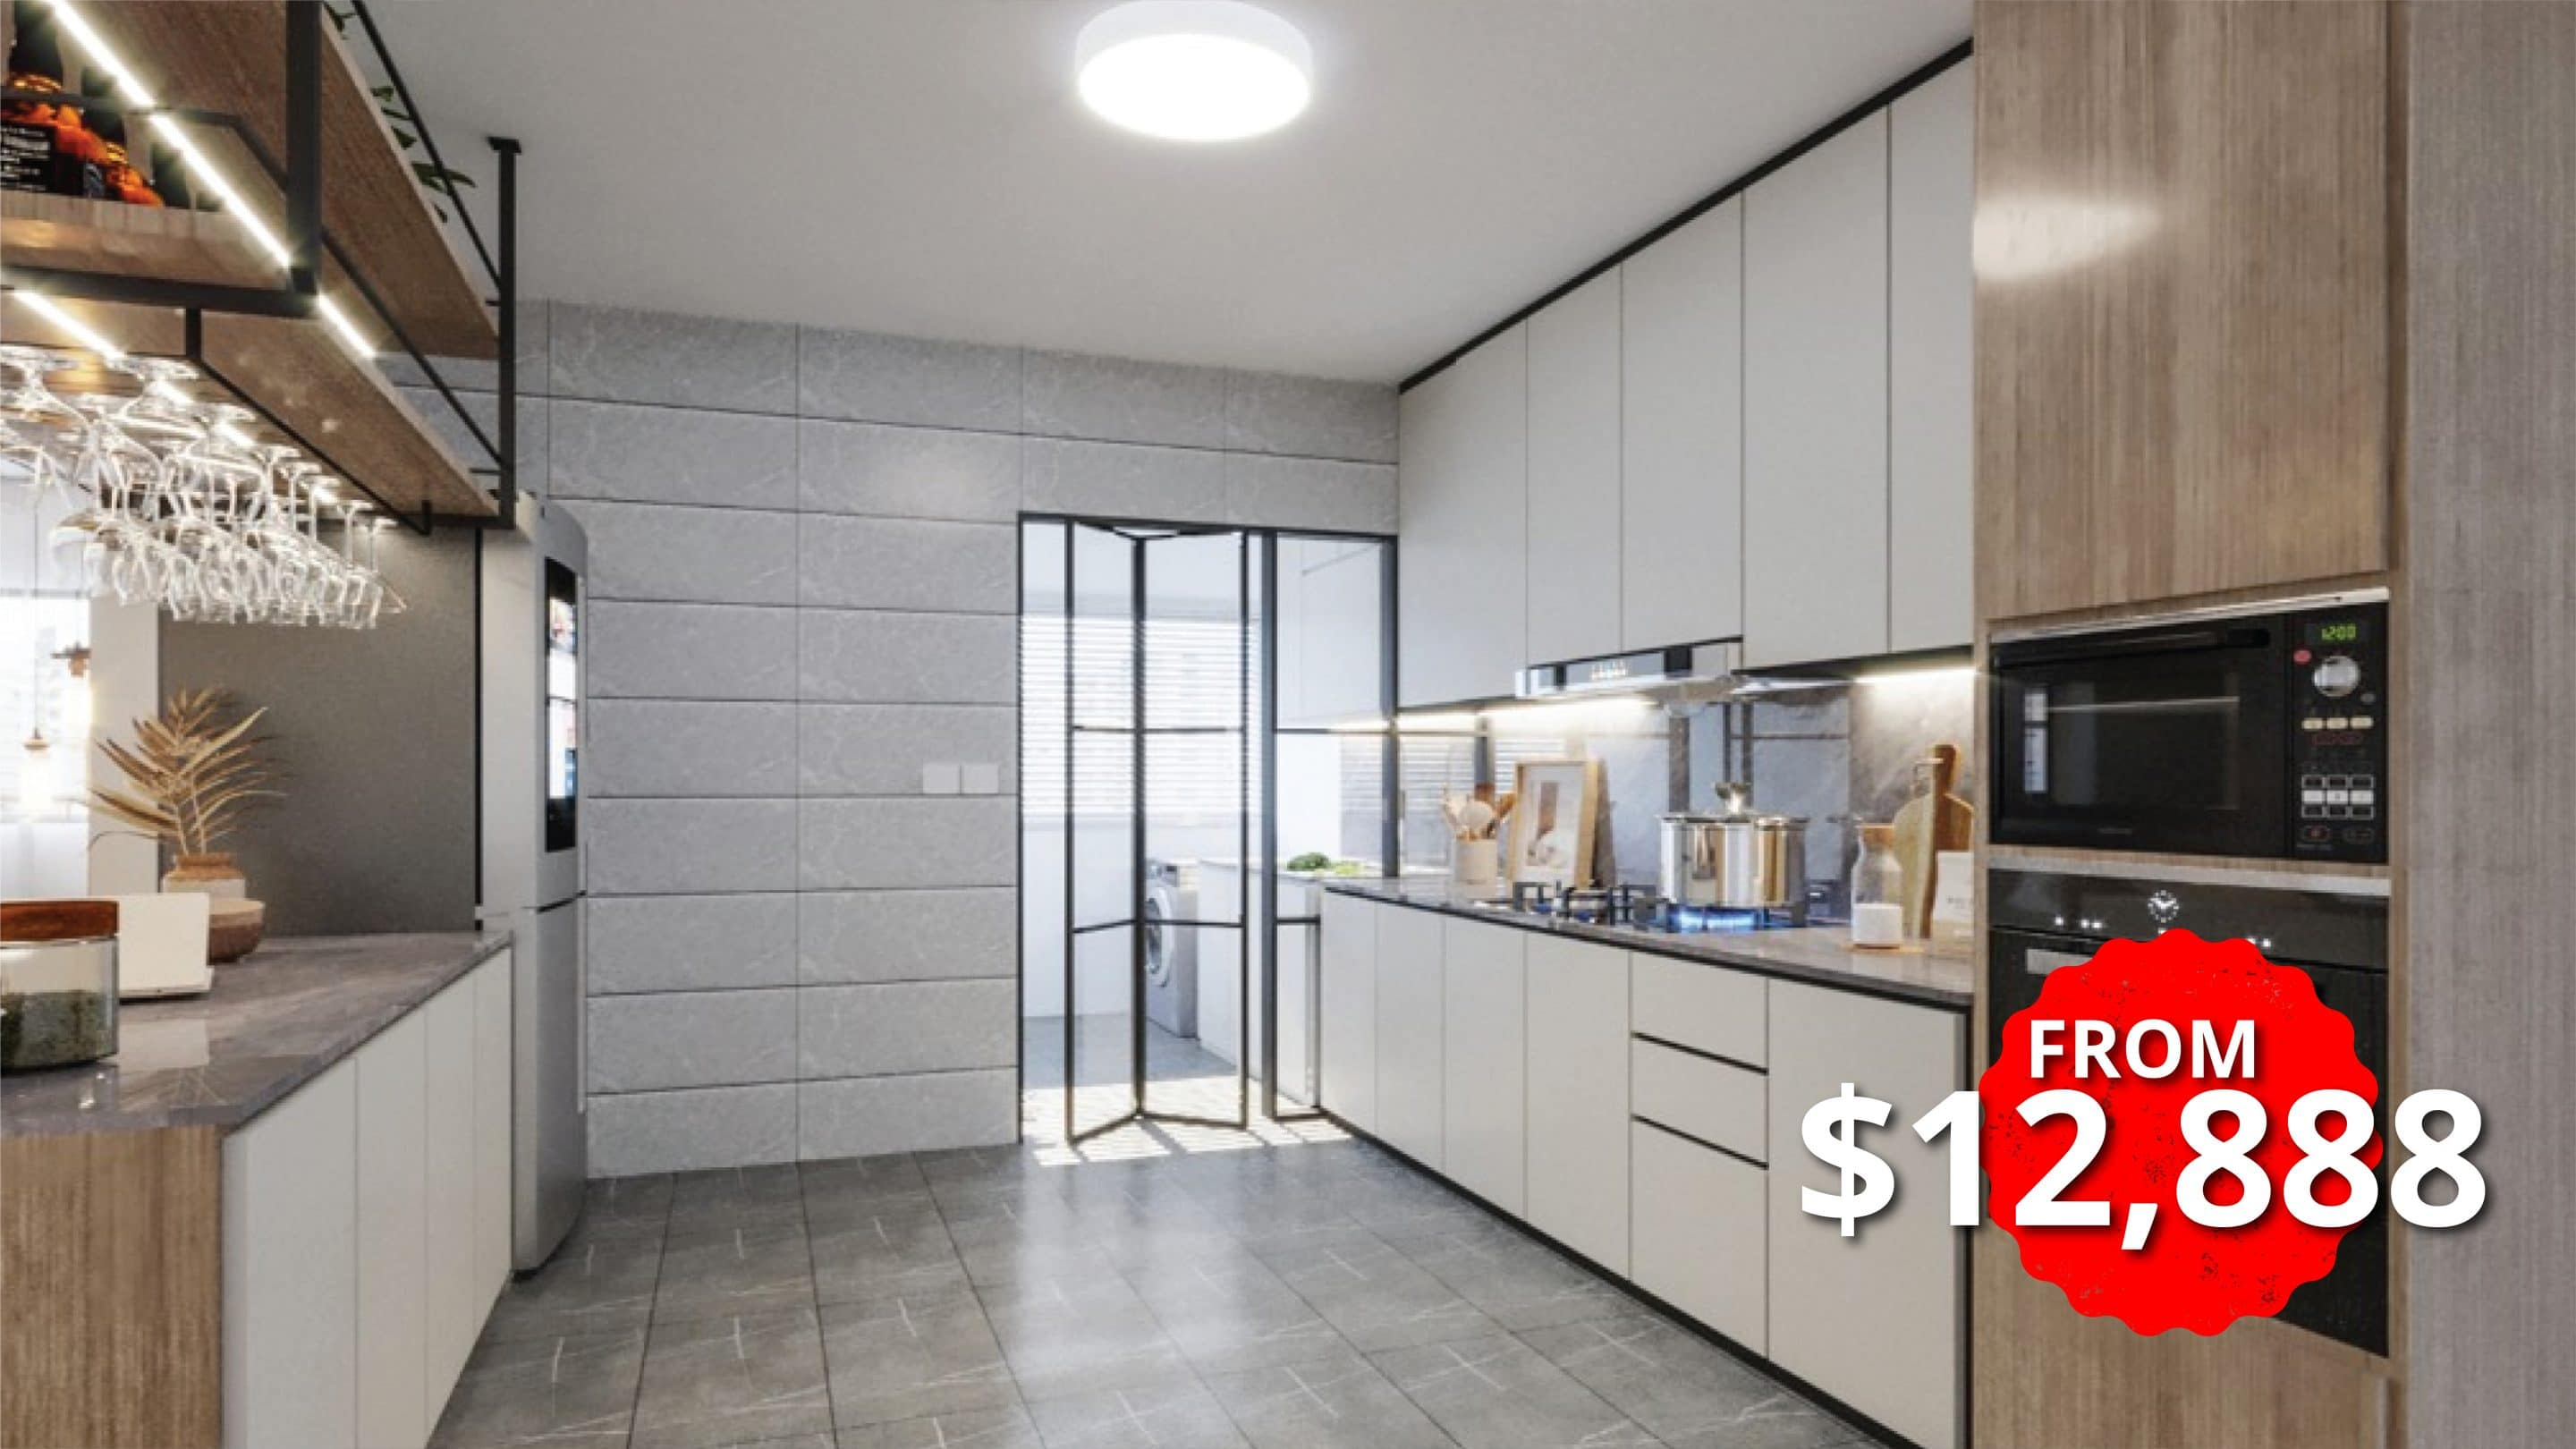 Singapore Renovation Packages